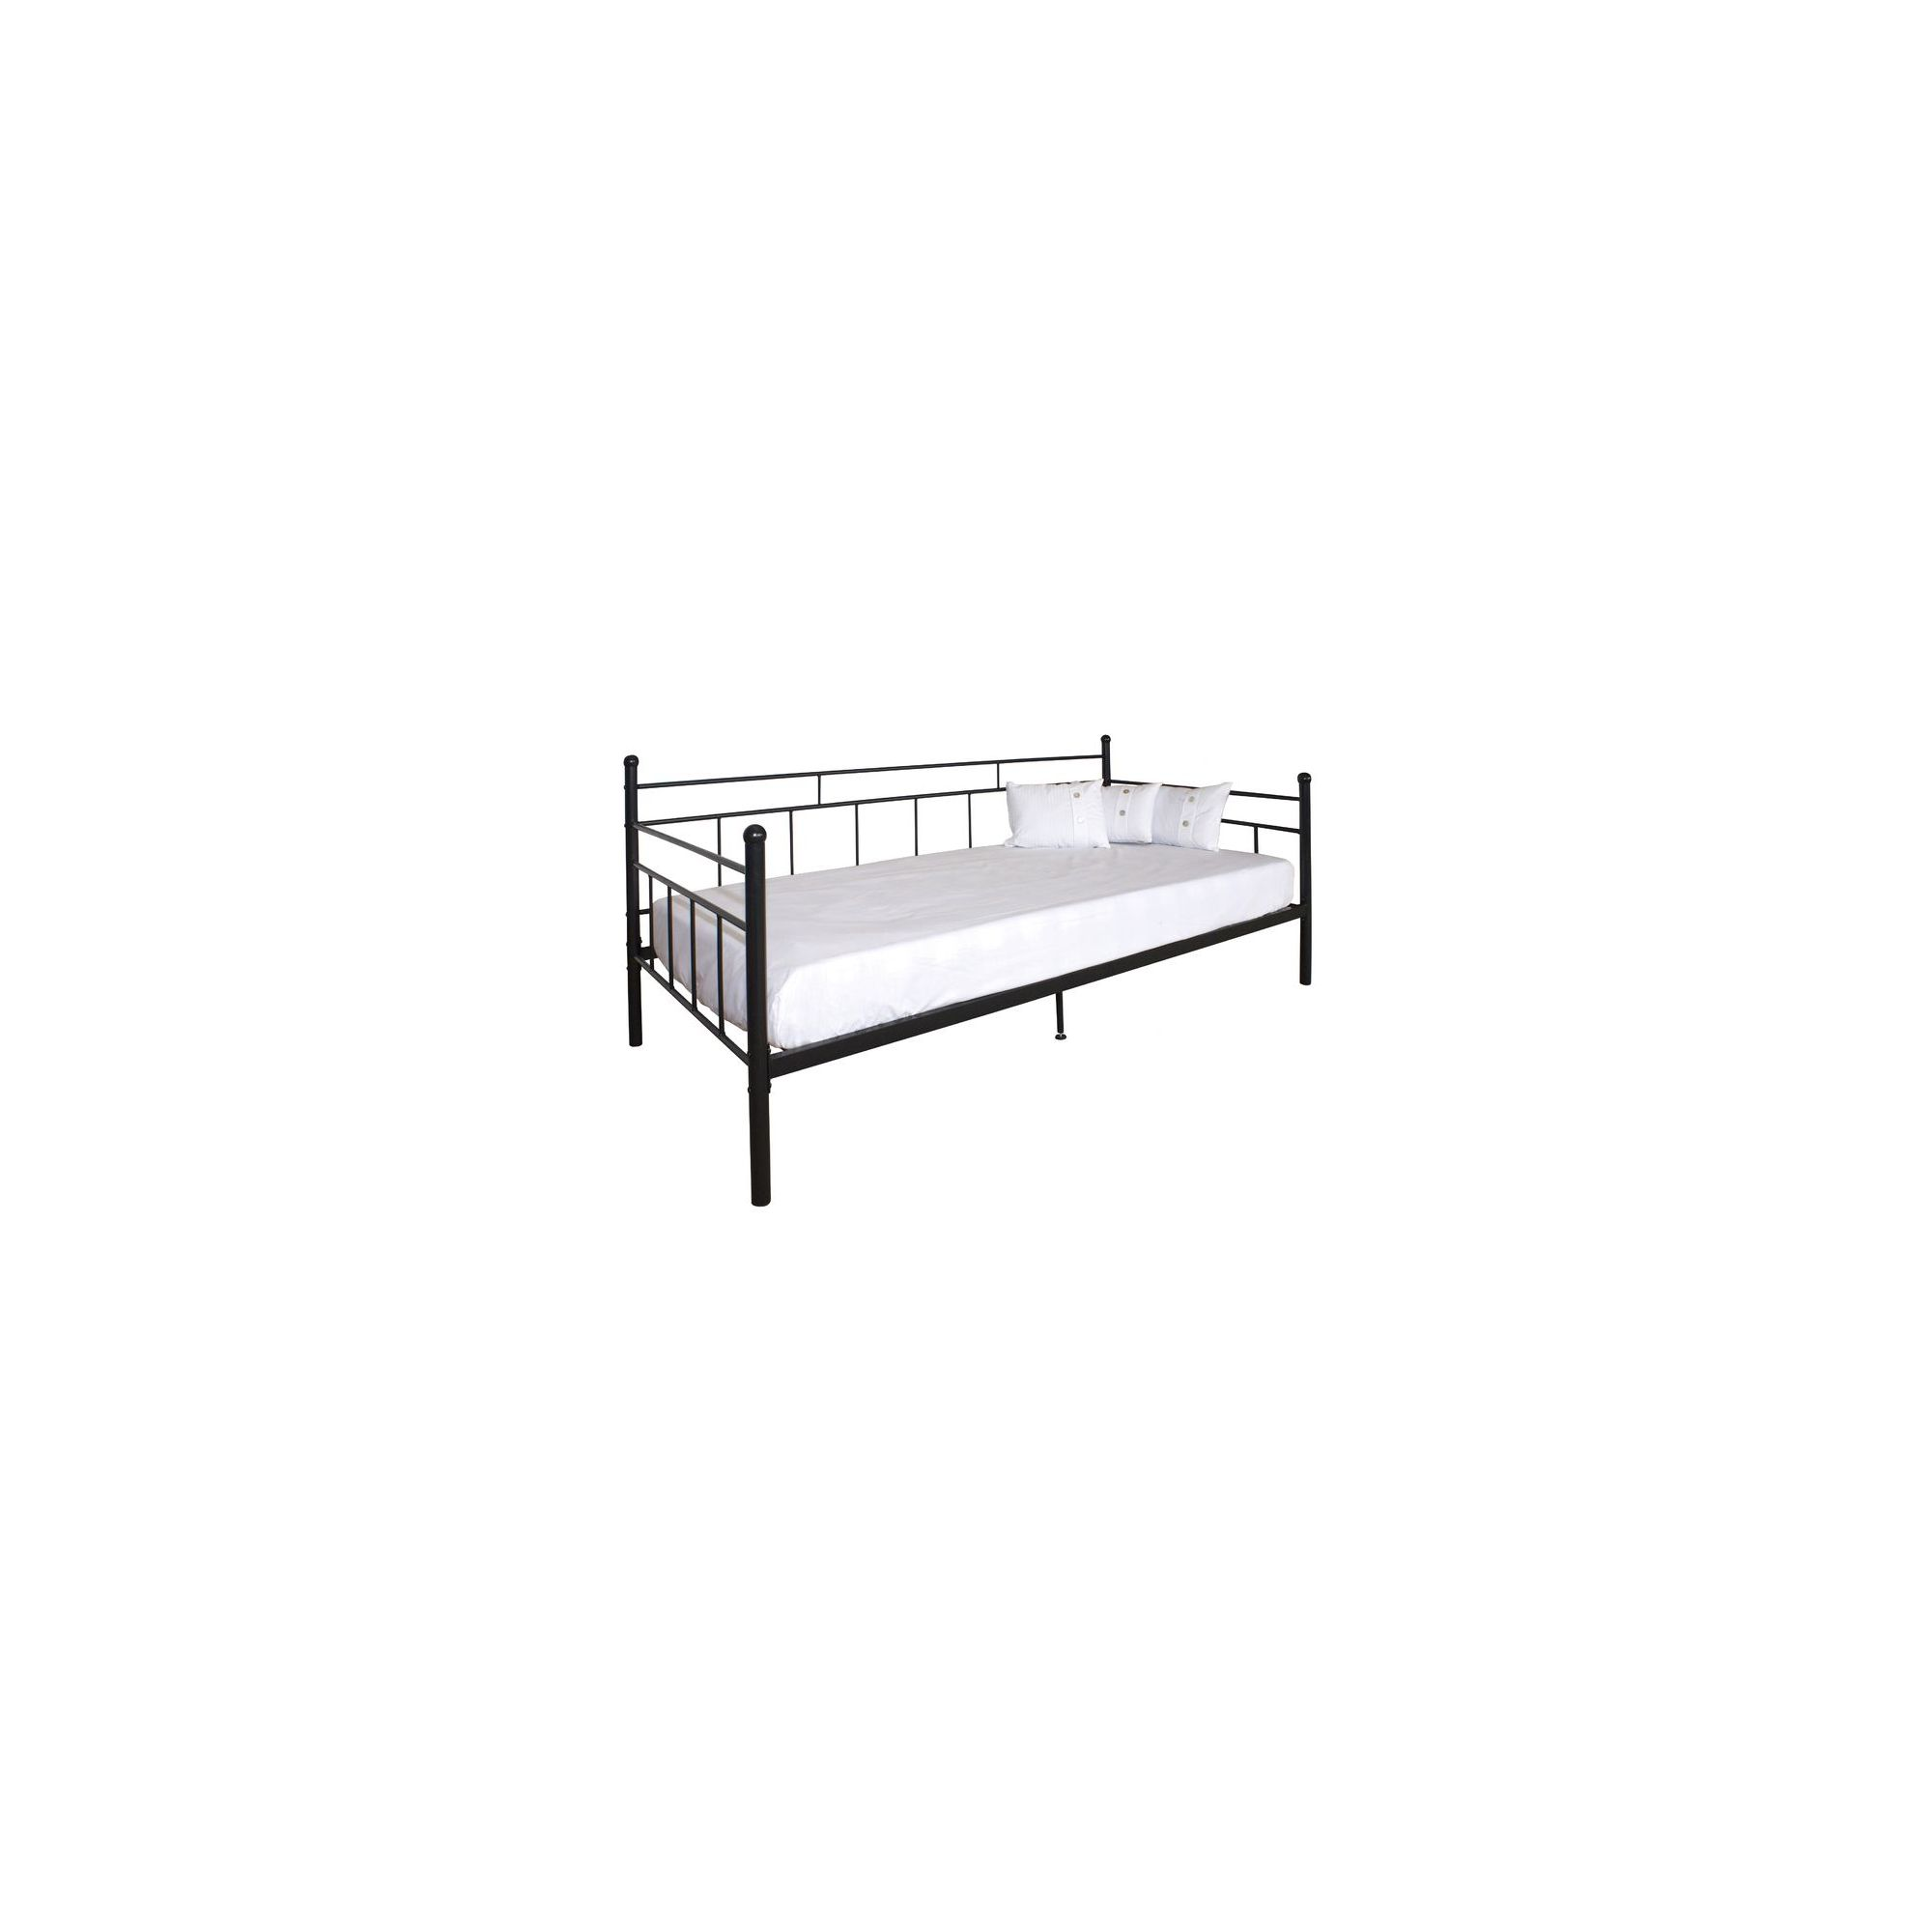 Gfw Arizona Day Bed Frame - White